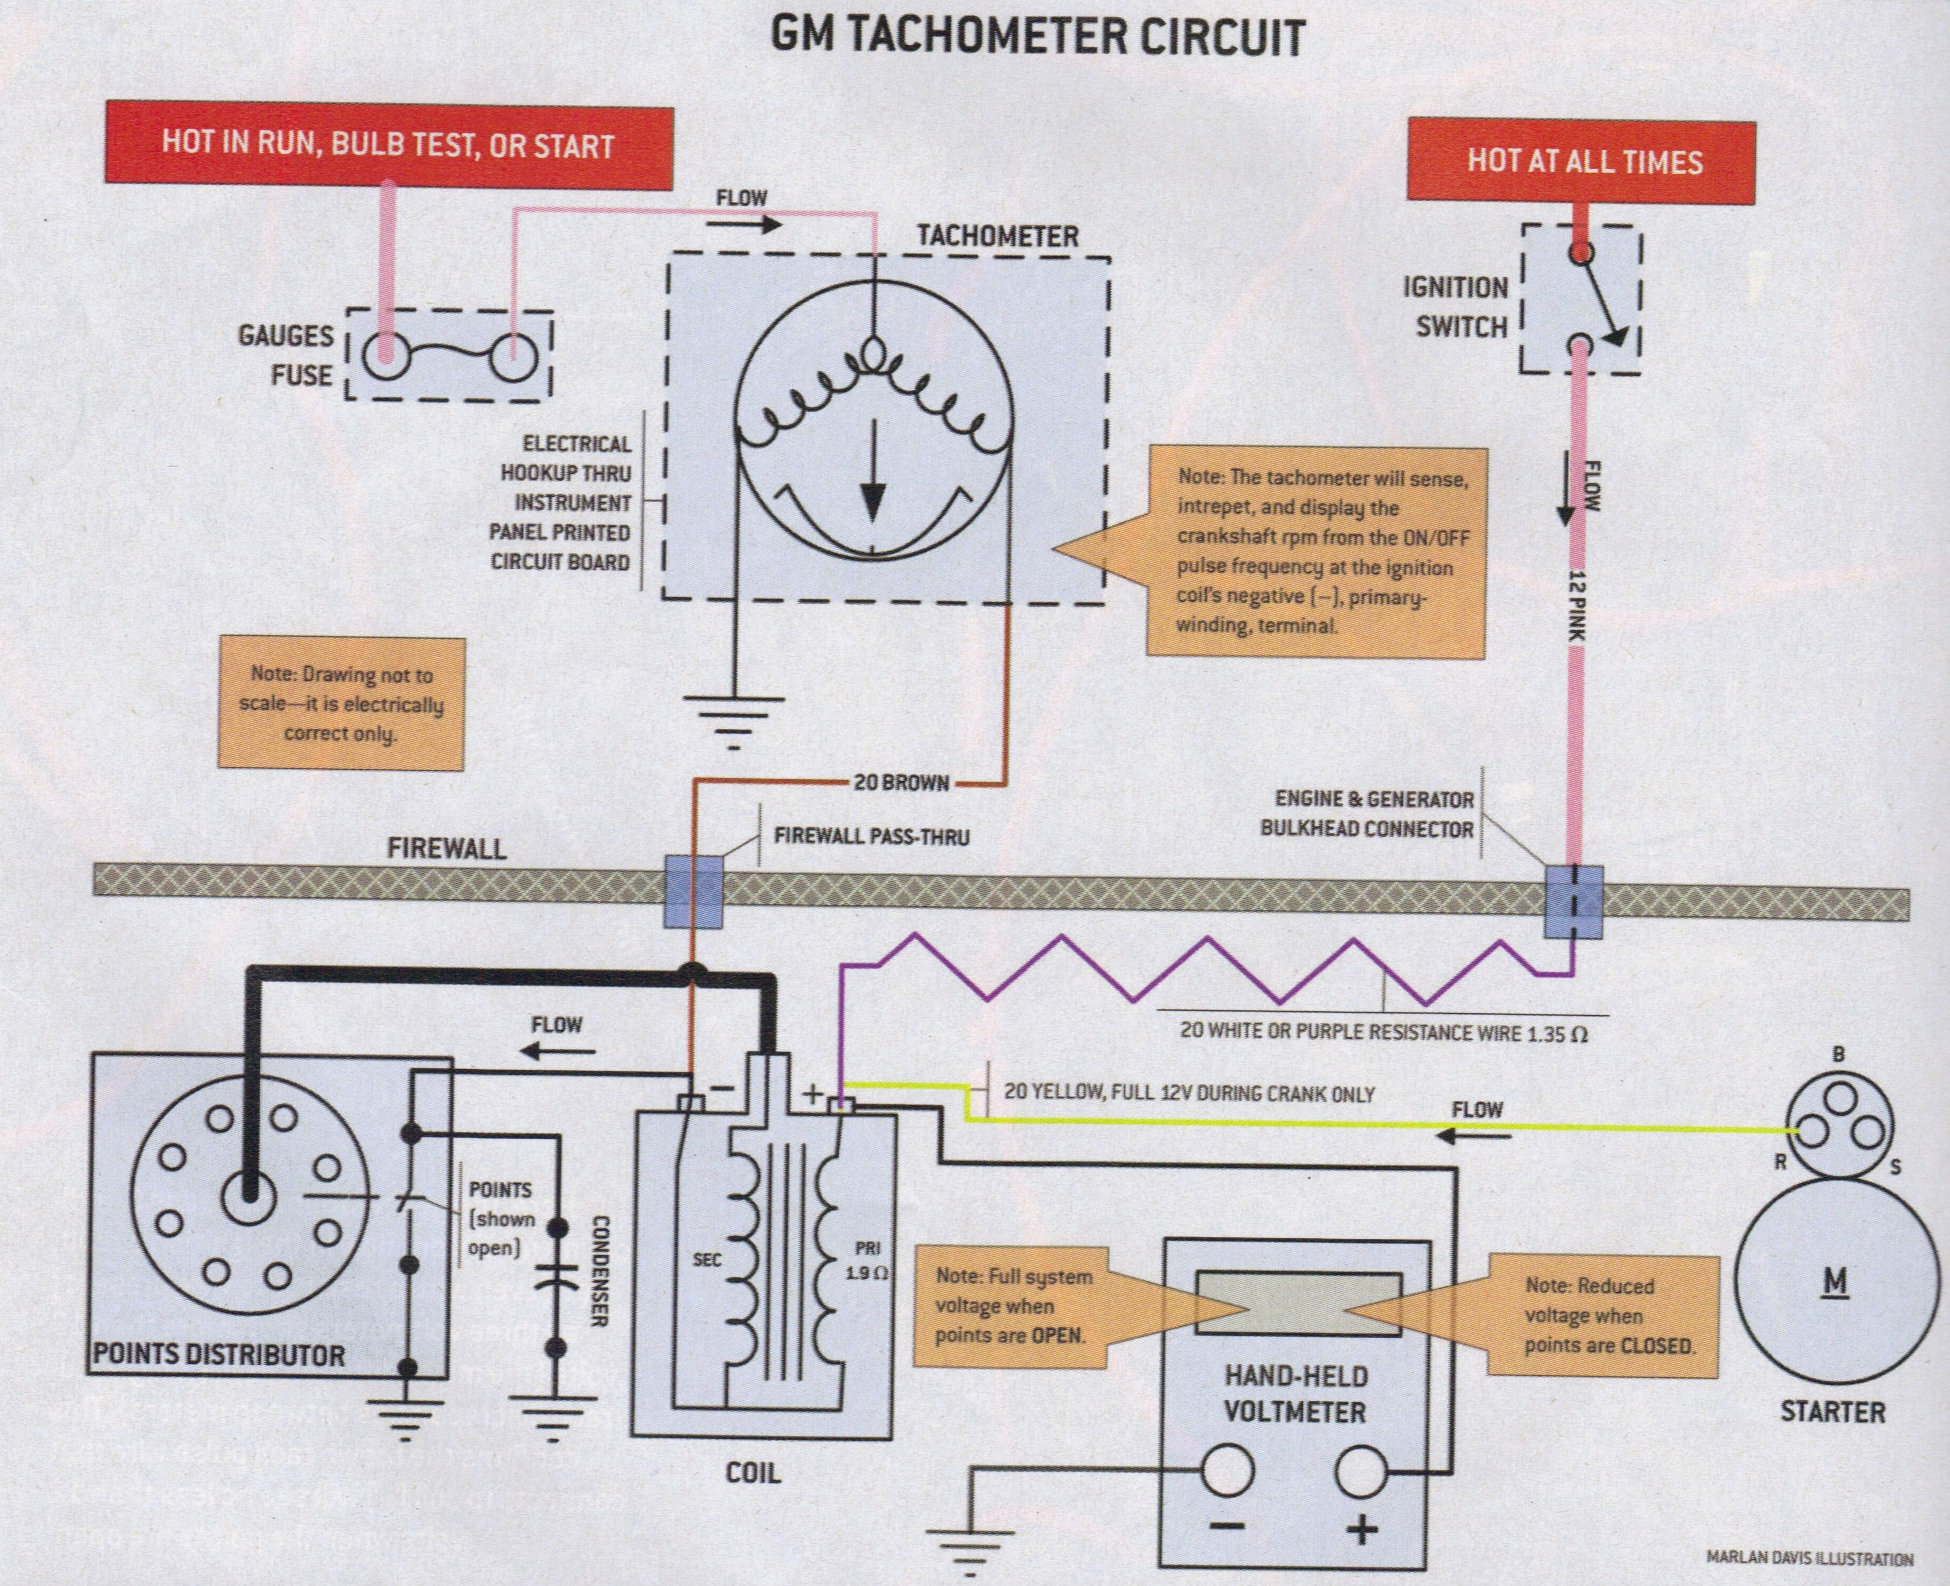 hight resolution of gm tach wiring drawing a